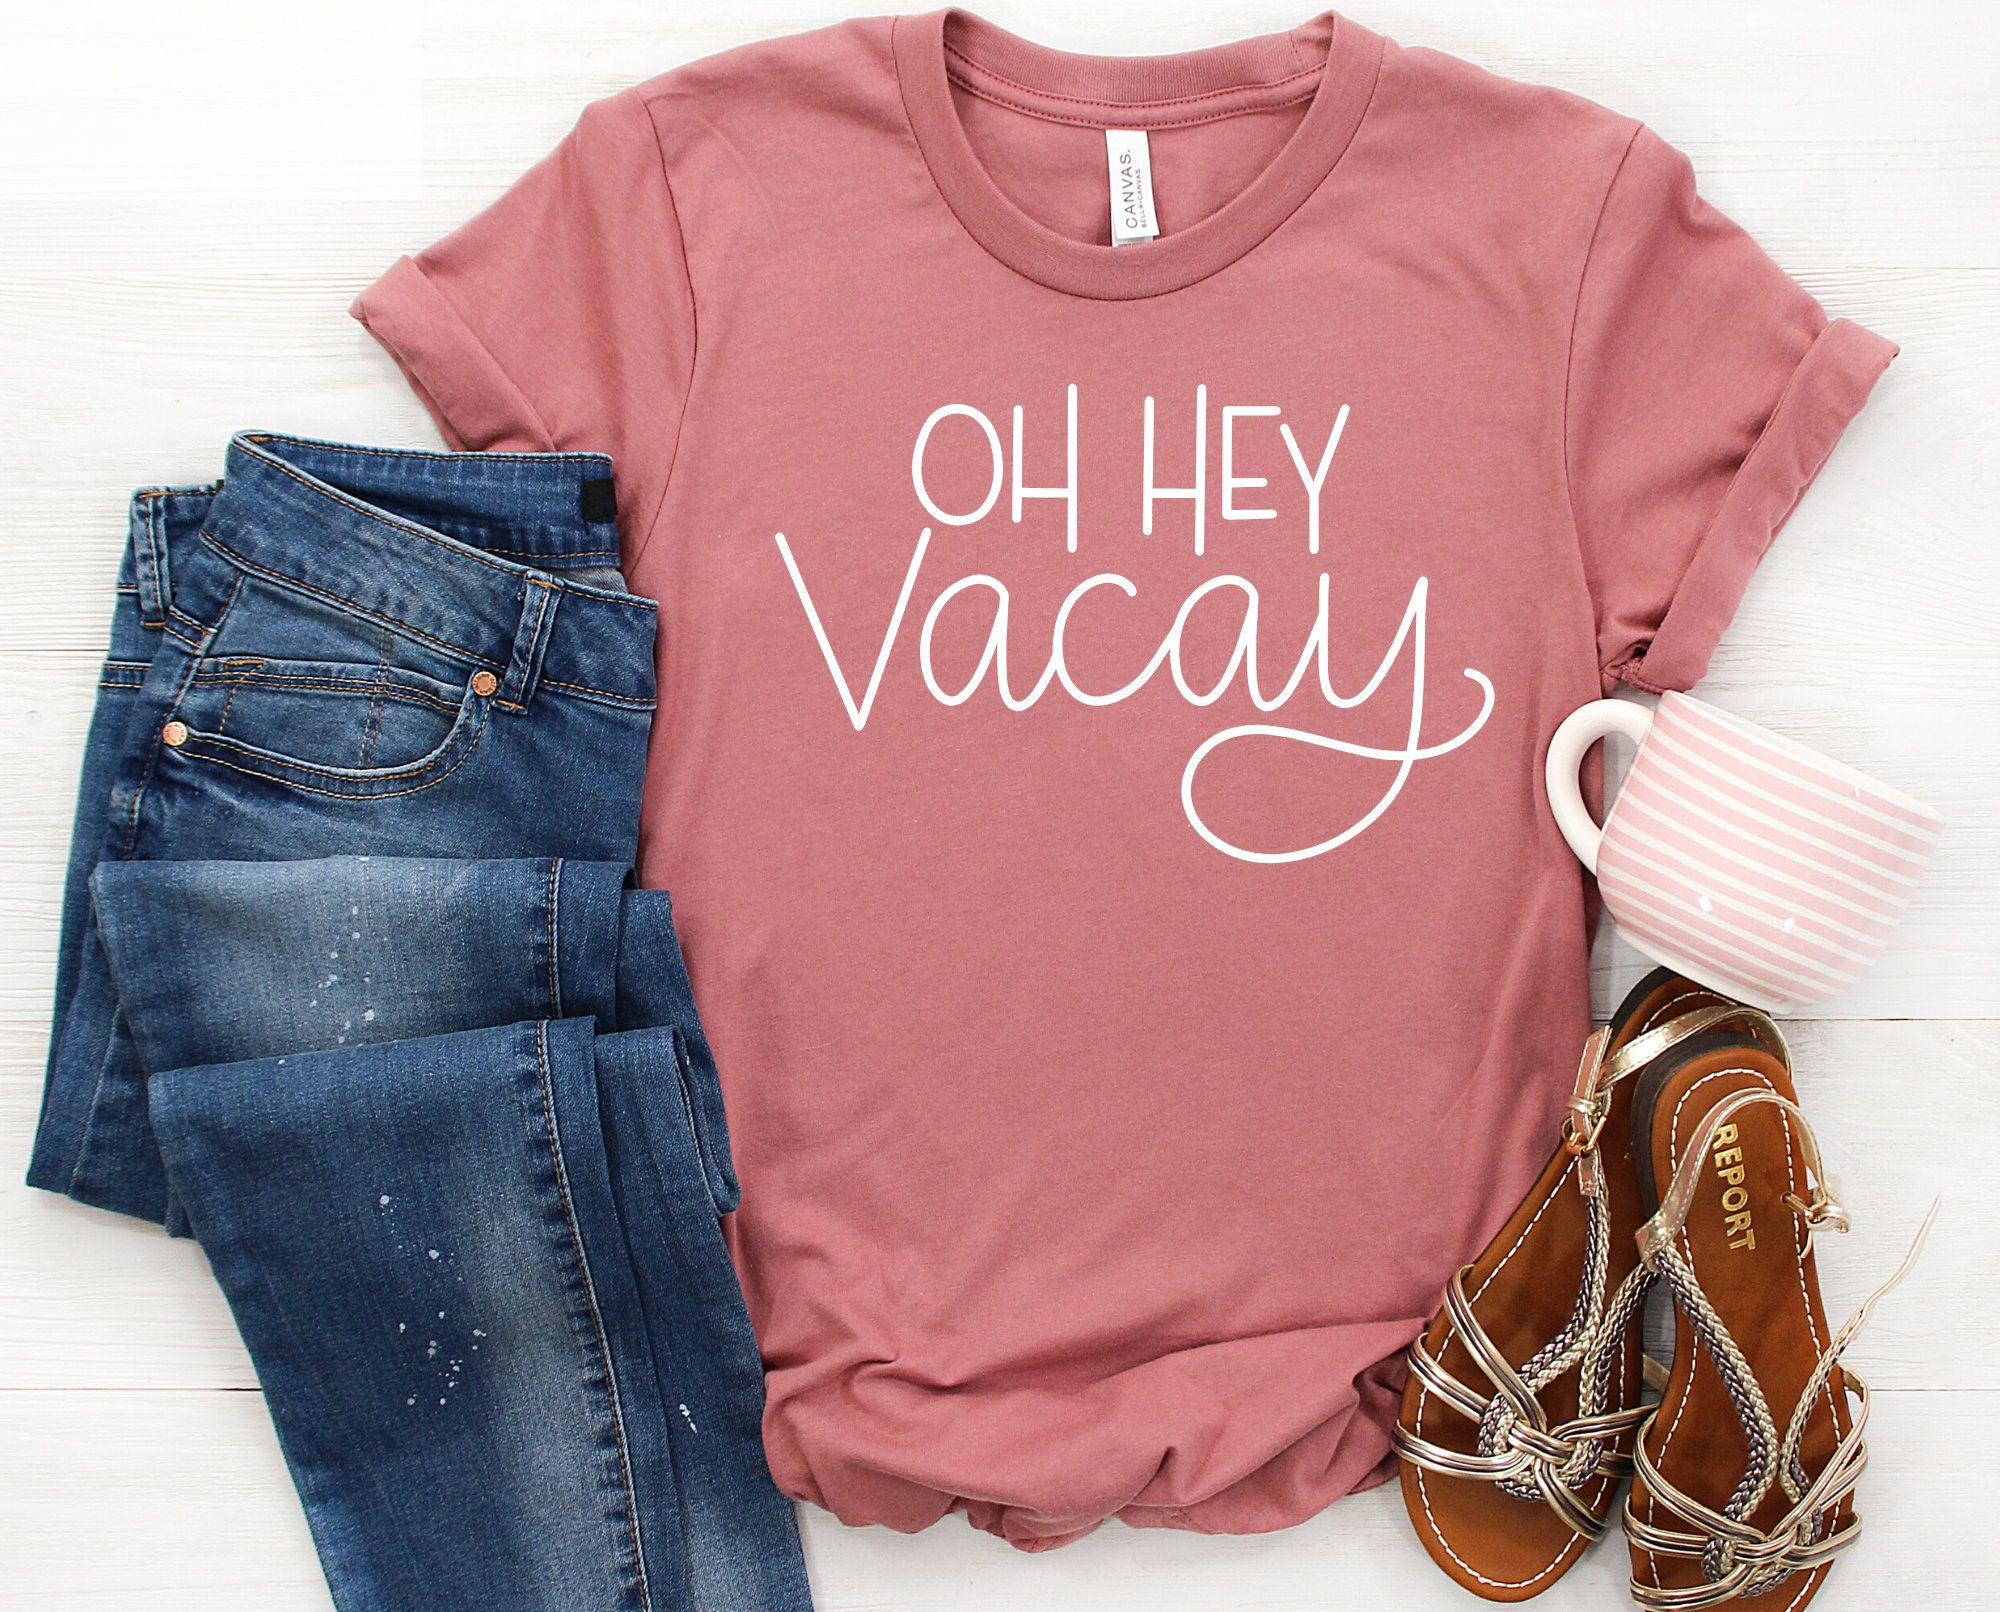 Oh Hey Vacay Shirt, Vacation Shirt, Girls Trip Shirt, Vacay Tee, Travel Shirt, Girls Weekend Shirt, Cruise Shirts, Group Shirt, Gift for Her